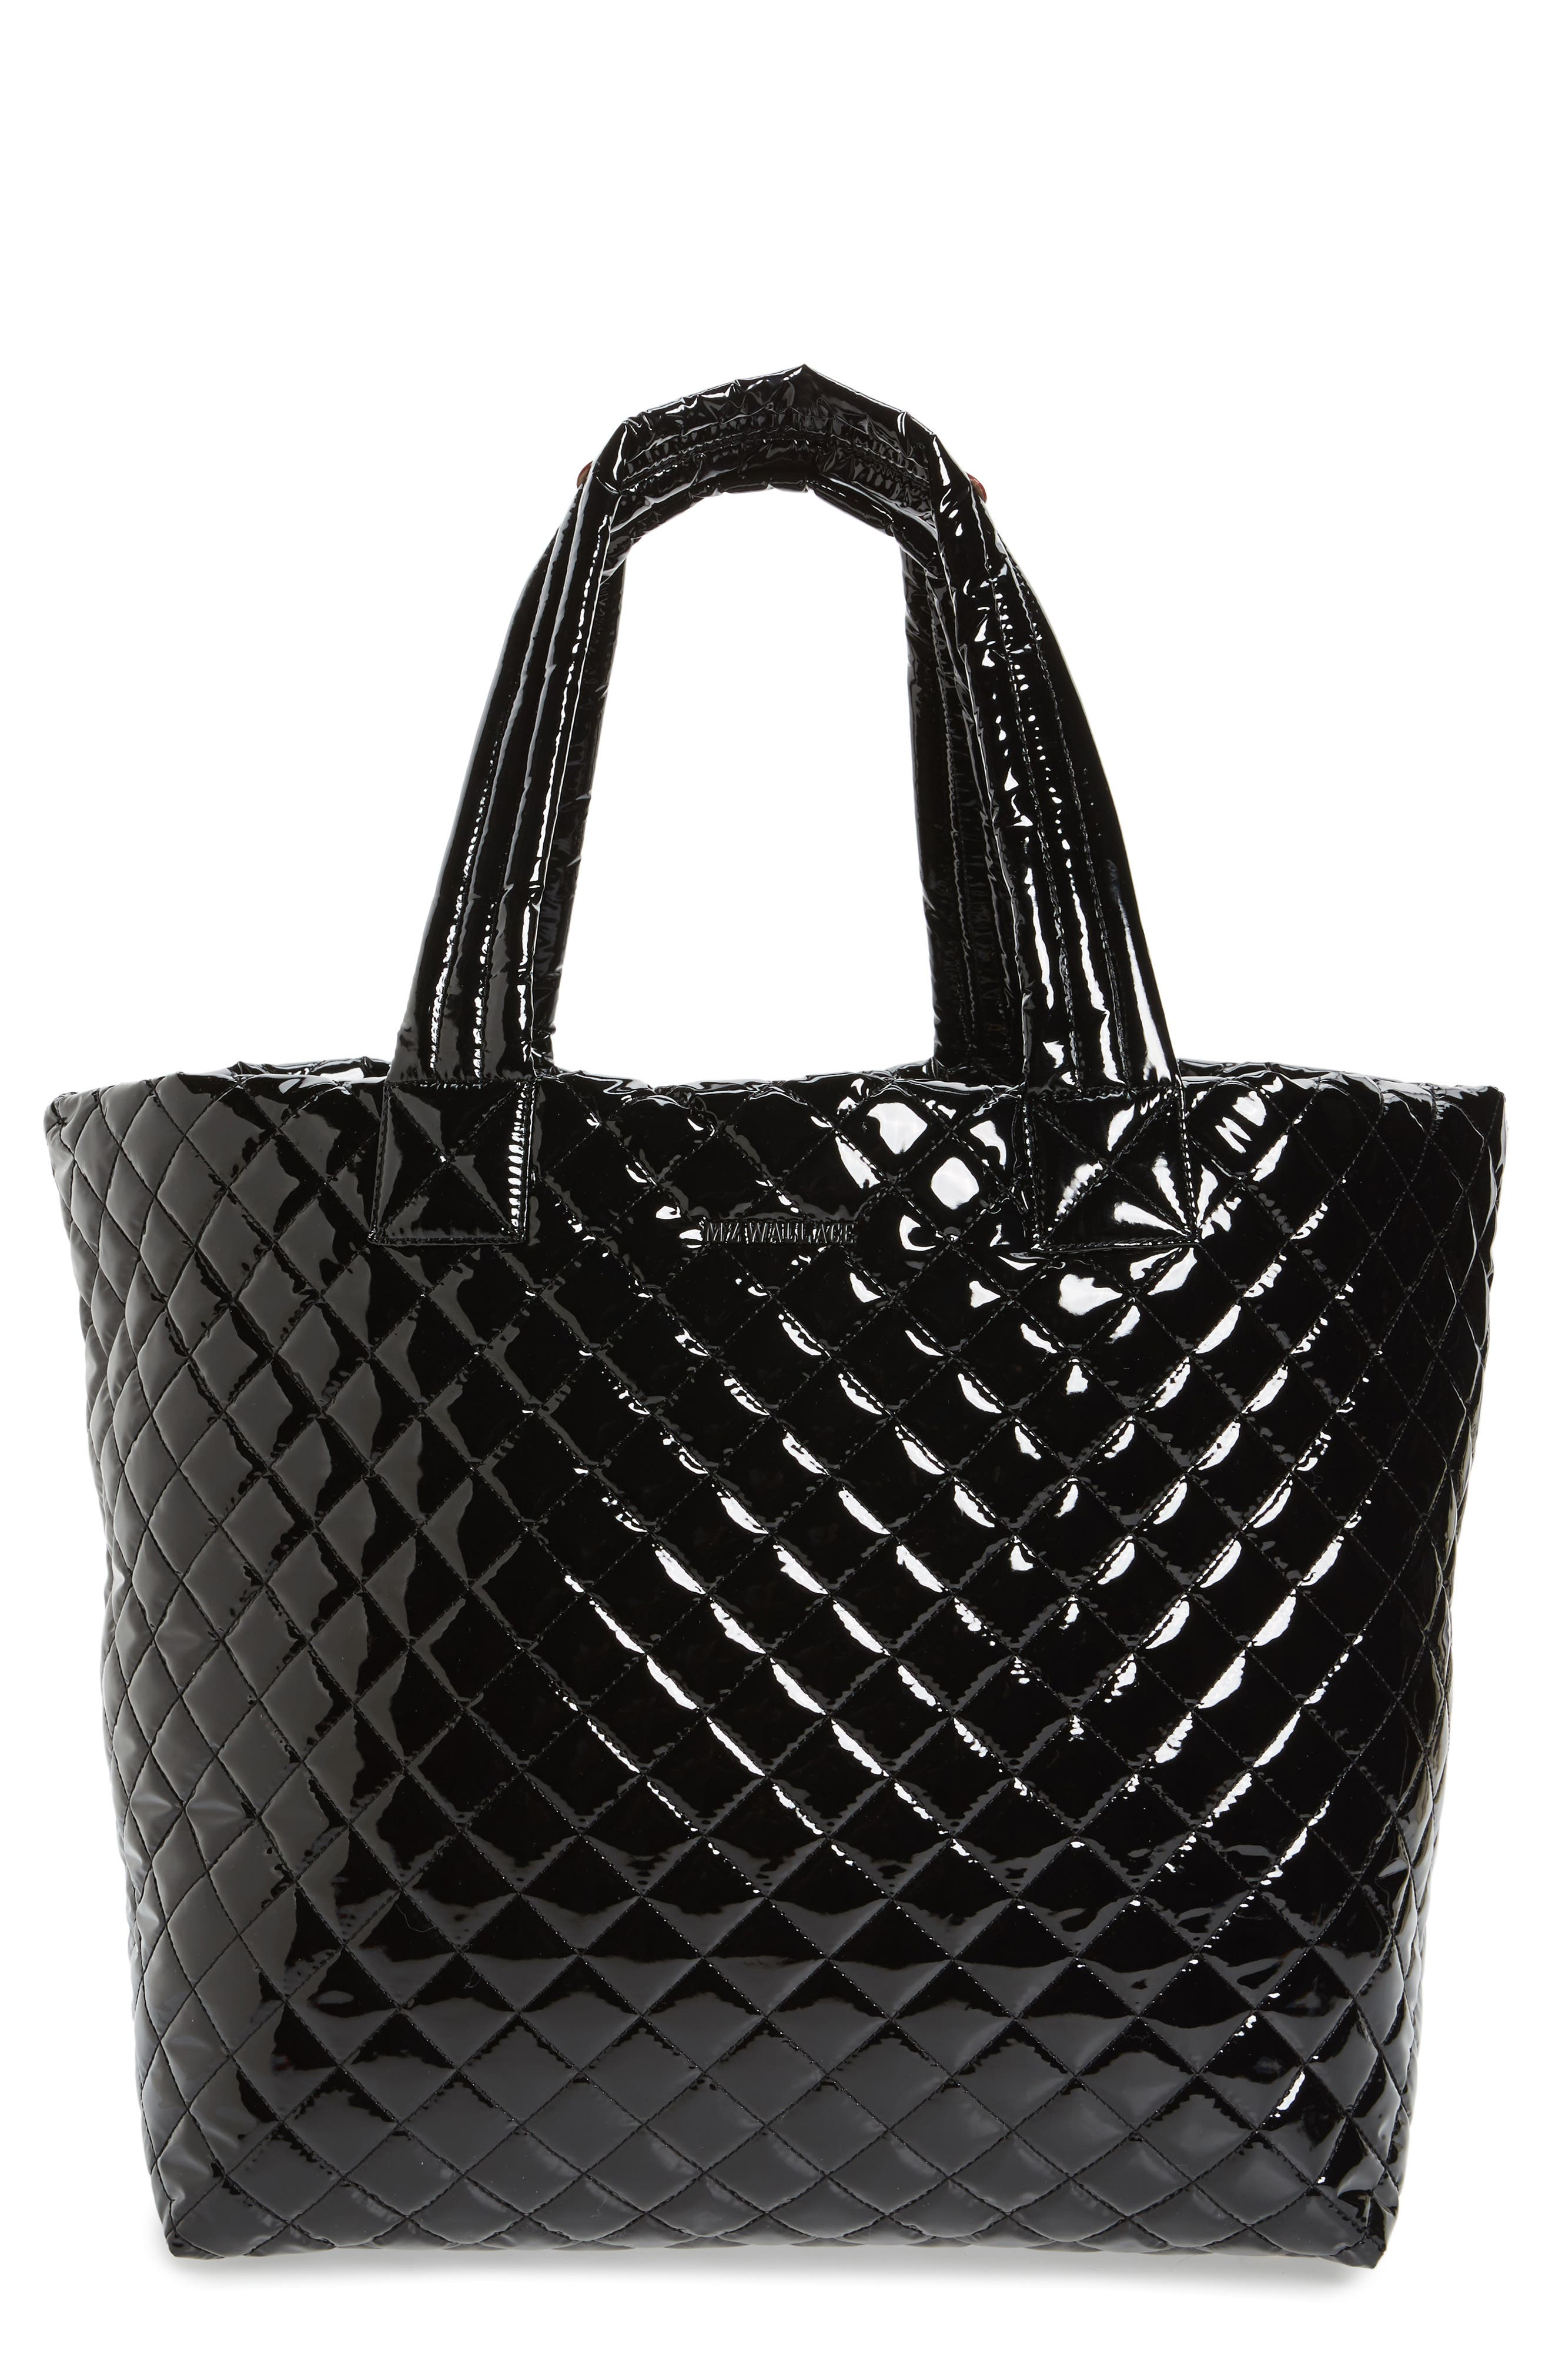 Alternate Image 1 Selected - MZ Wallace 'Large Metro' Quilted Oxford Nylon Tote